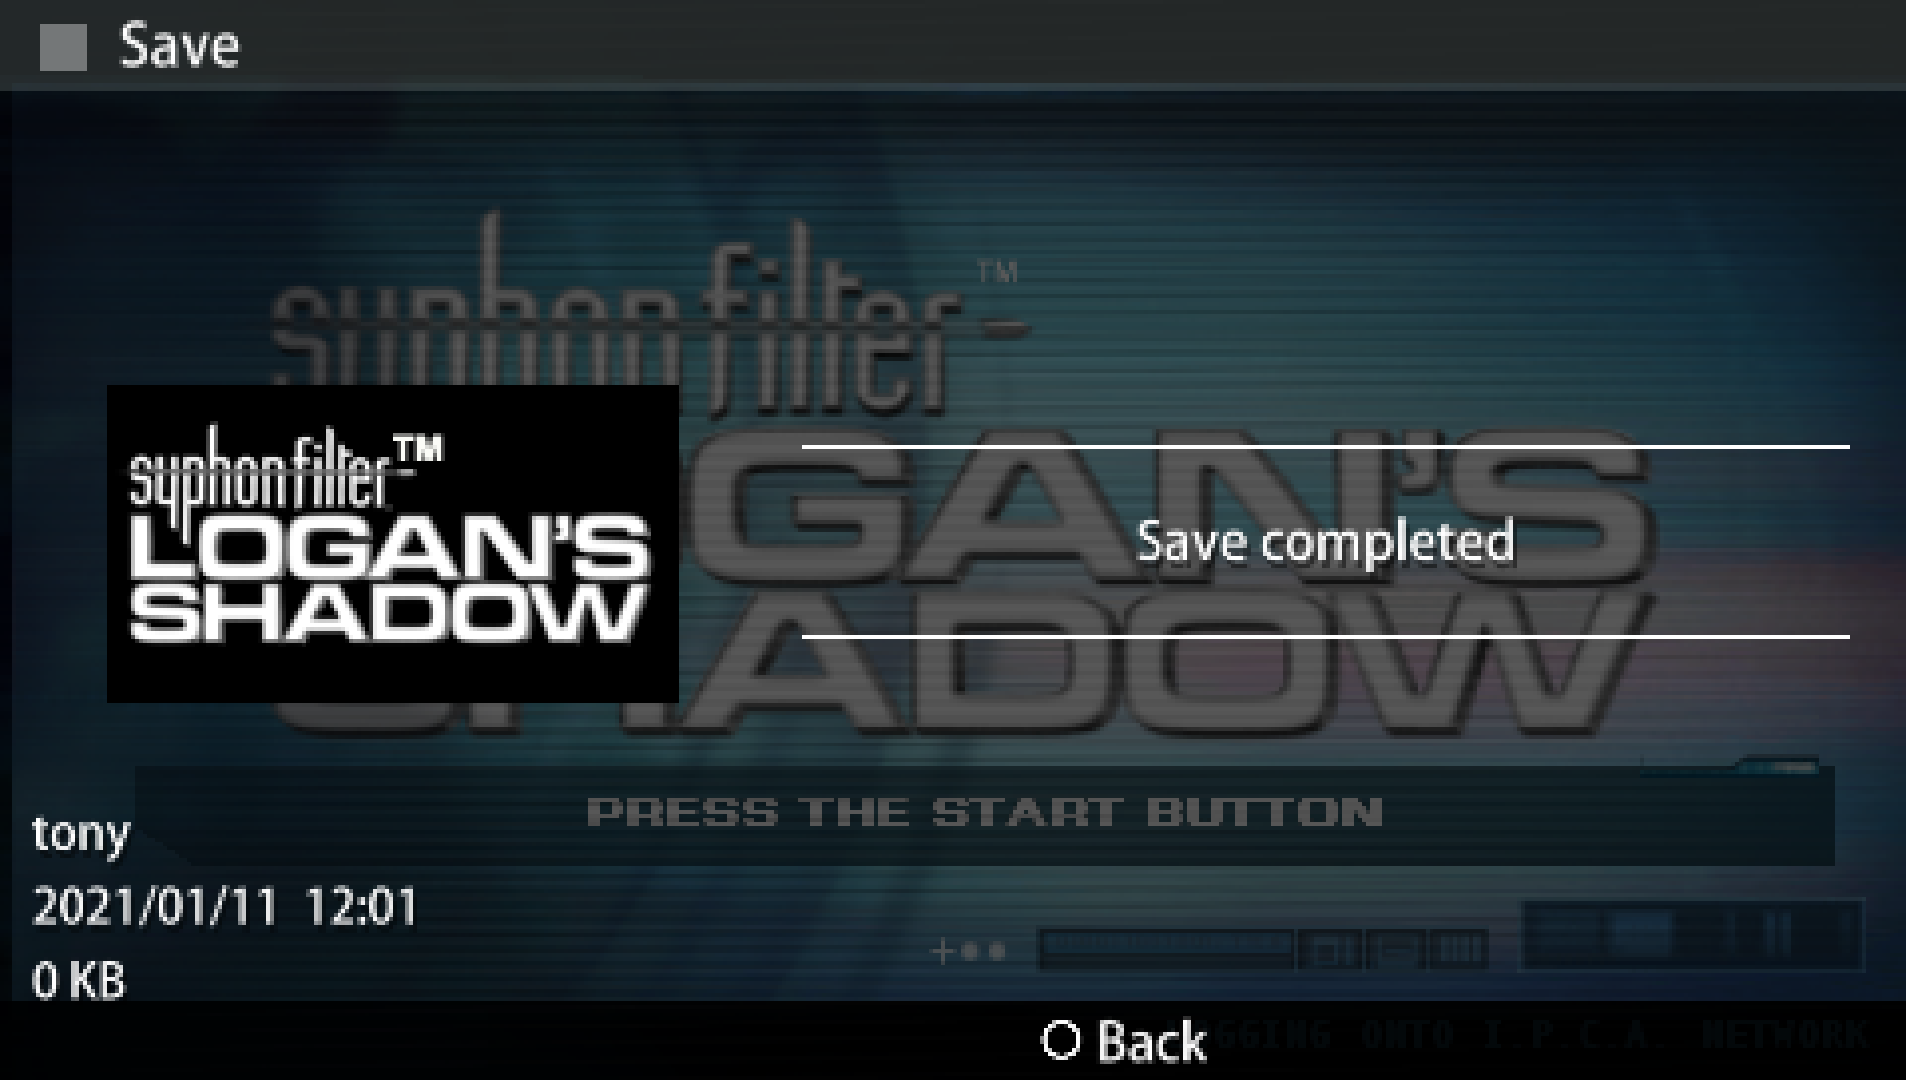 https://s3.eu-west-3.amazonaws.com/games.anthony-dessalles.com/Syphon Filter Logan's Shadow PSP 2021 - Screenshots/Syphon Filter Logan's Shadow-210111-120120.png